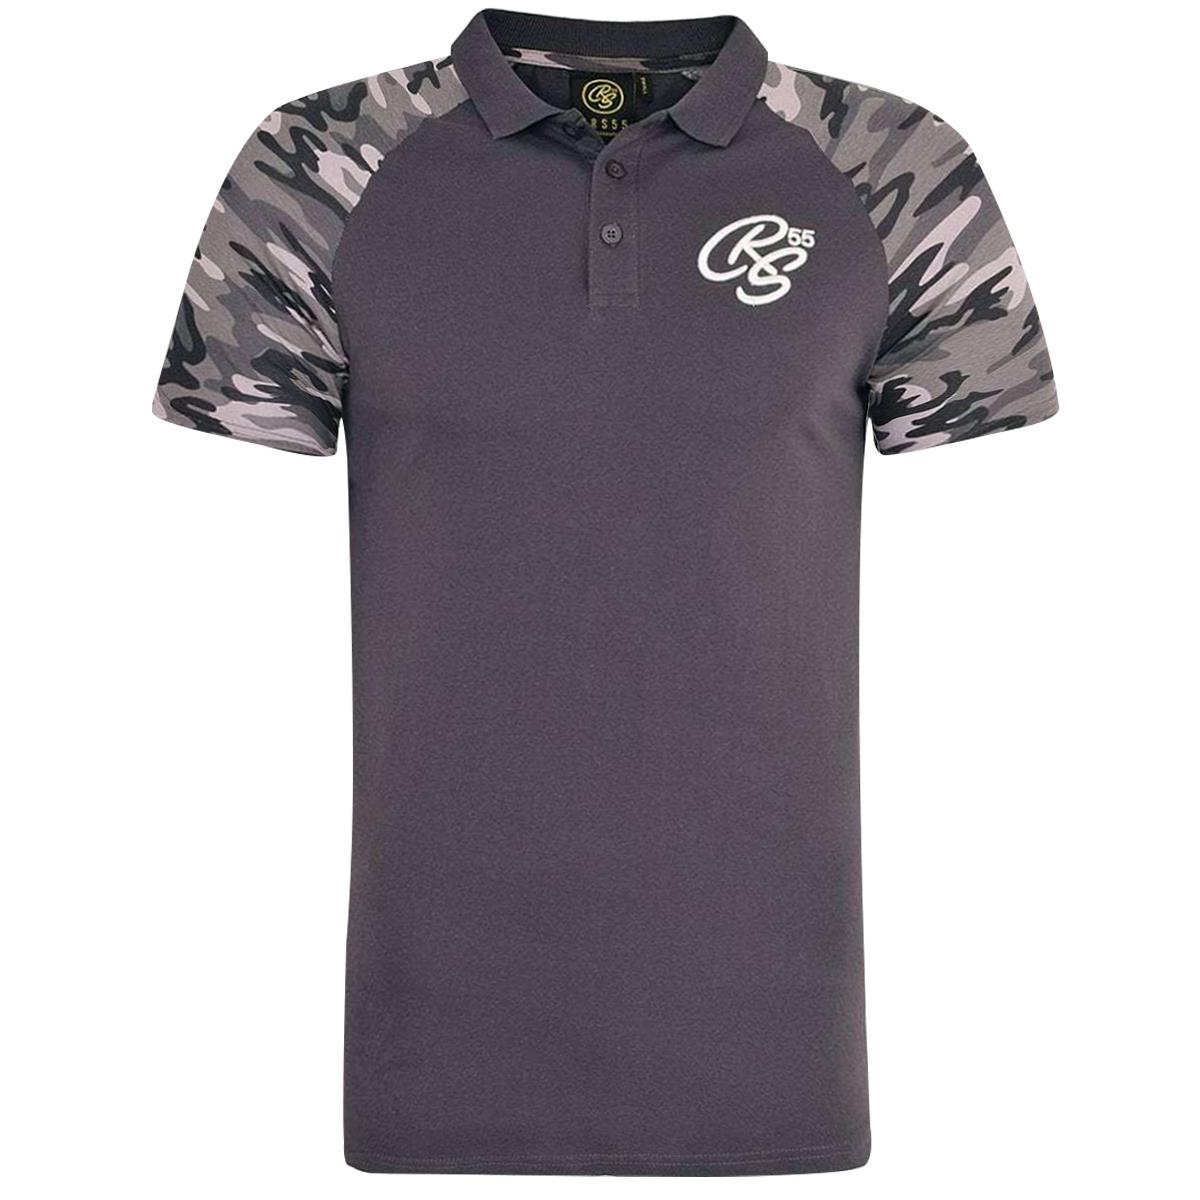 Mens-Crosshatch-Army-Polo-T-Shirt-Collared-T-Shirt-Camo-Sleeve-Casual-Top-Tee thumbnail 4